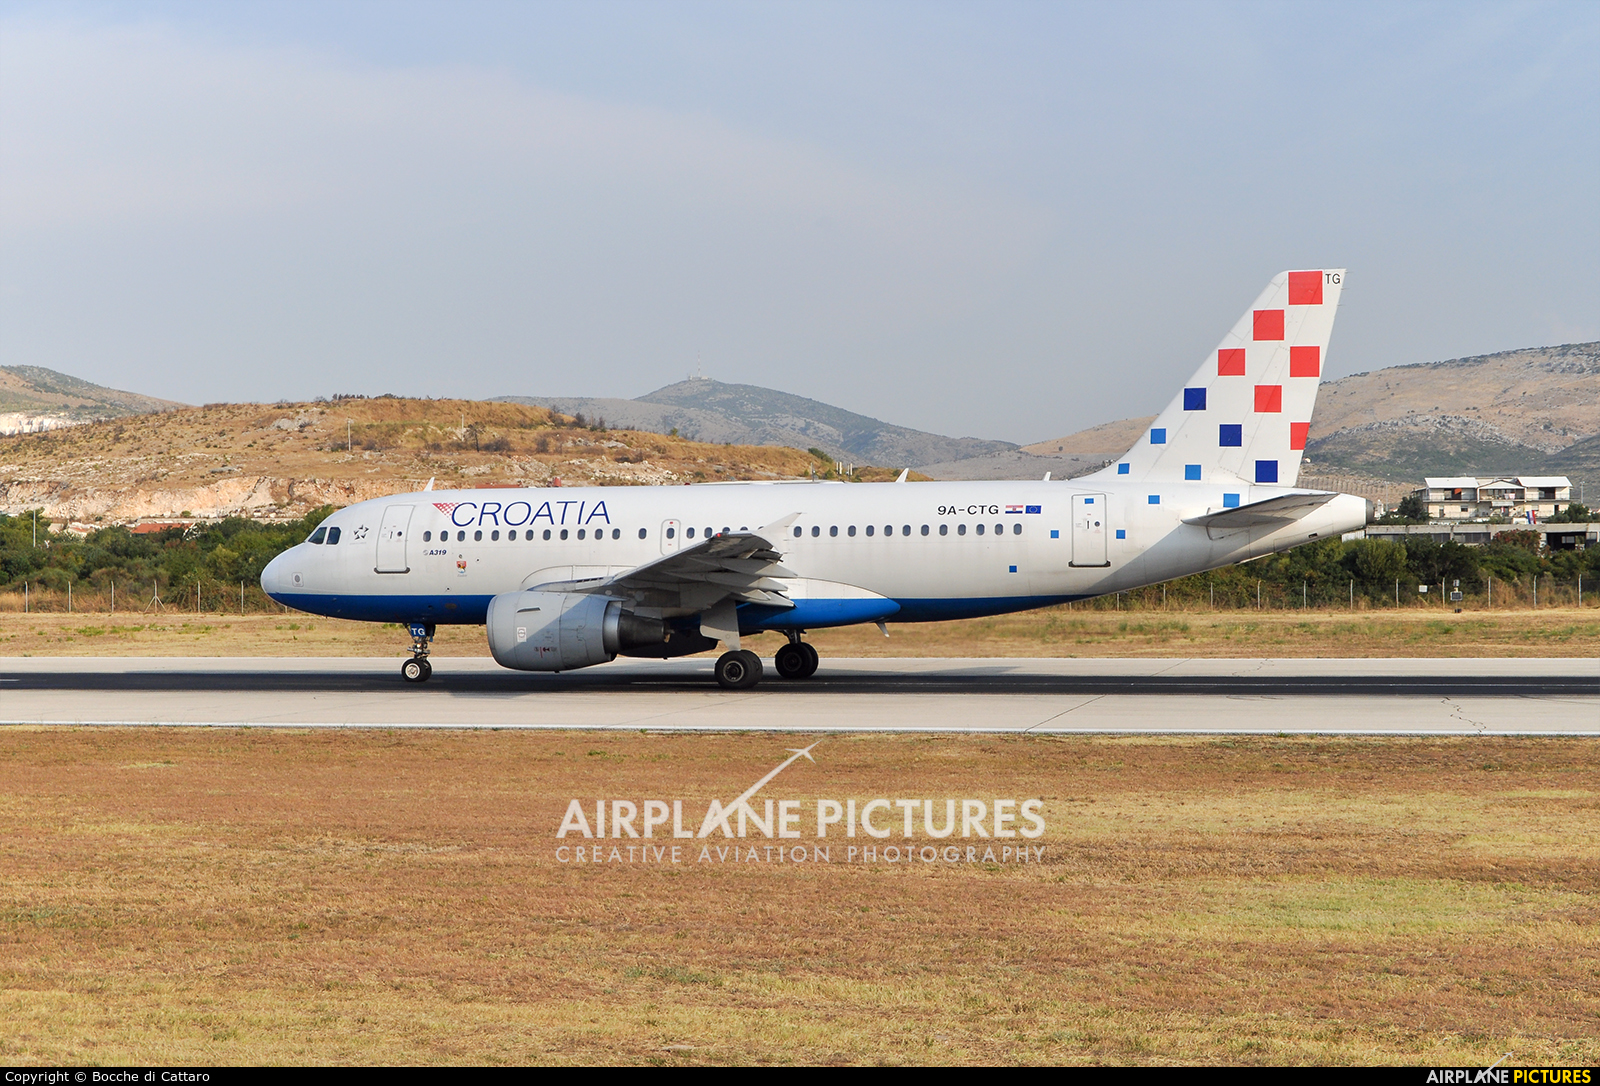 Croatia Airlines 9A-CTG aircraft at Split - Kaštela